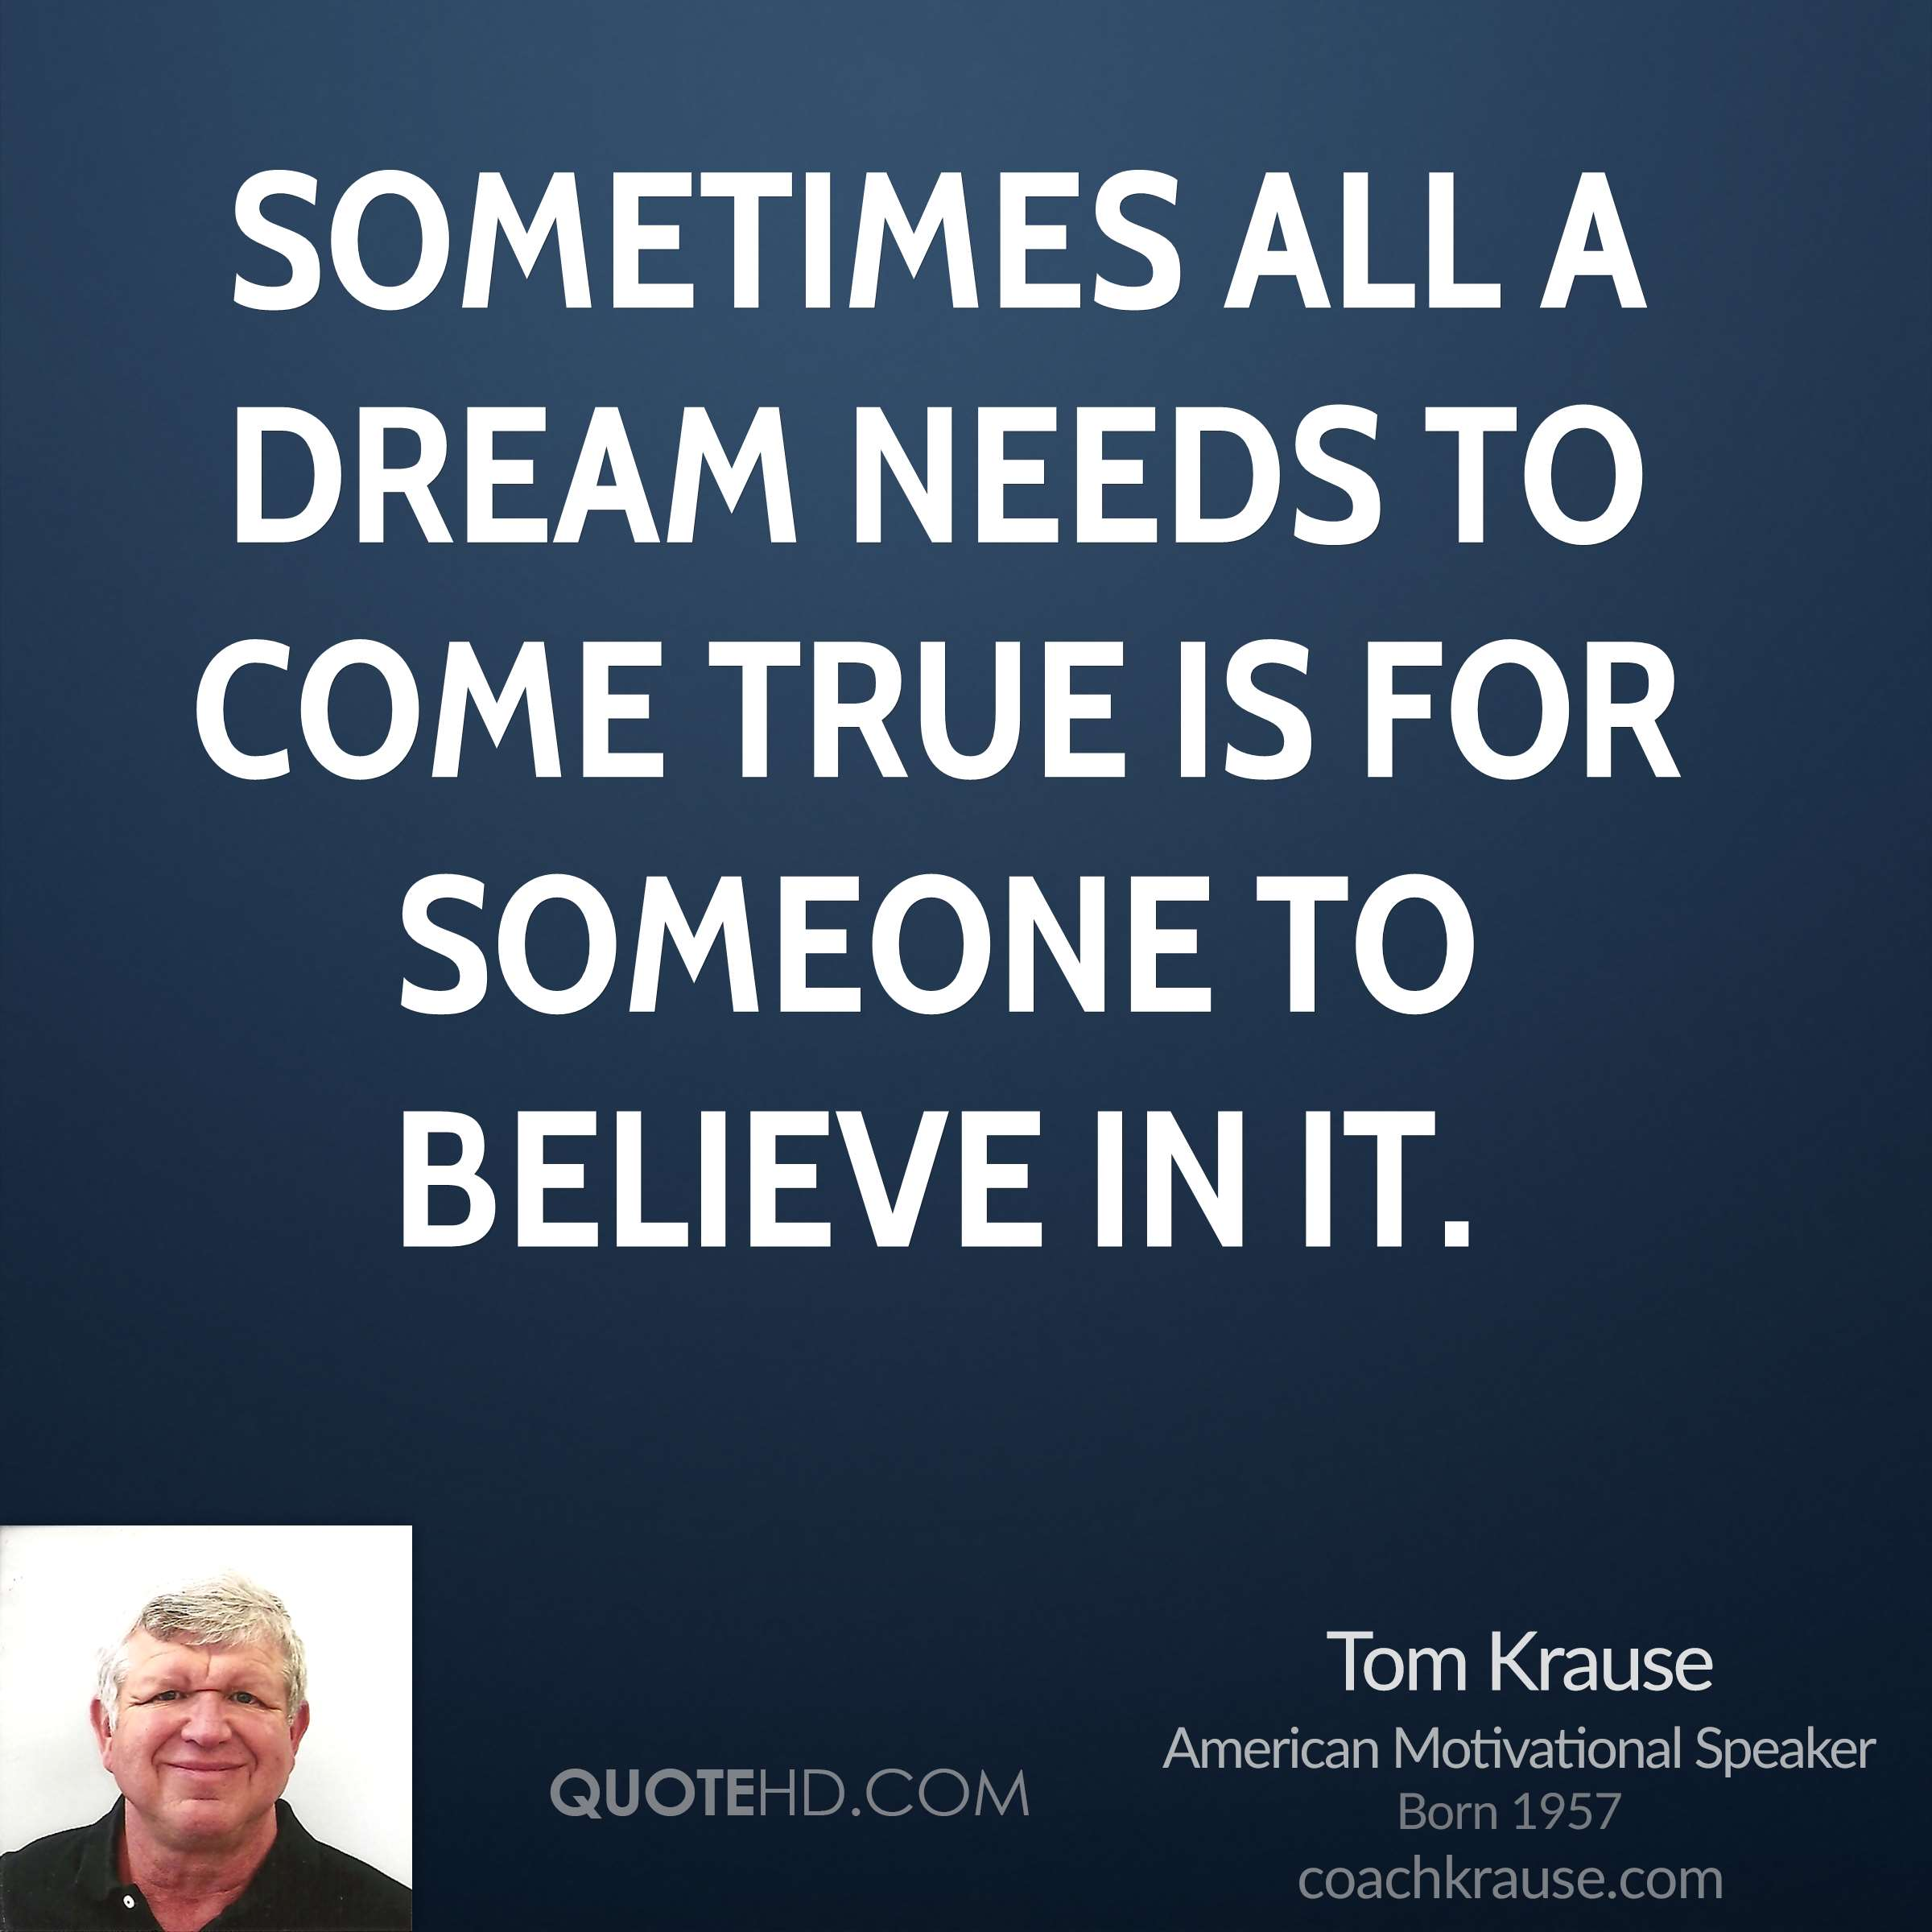 Sometimes all a dream needs to come true is for someone to believe in it.